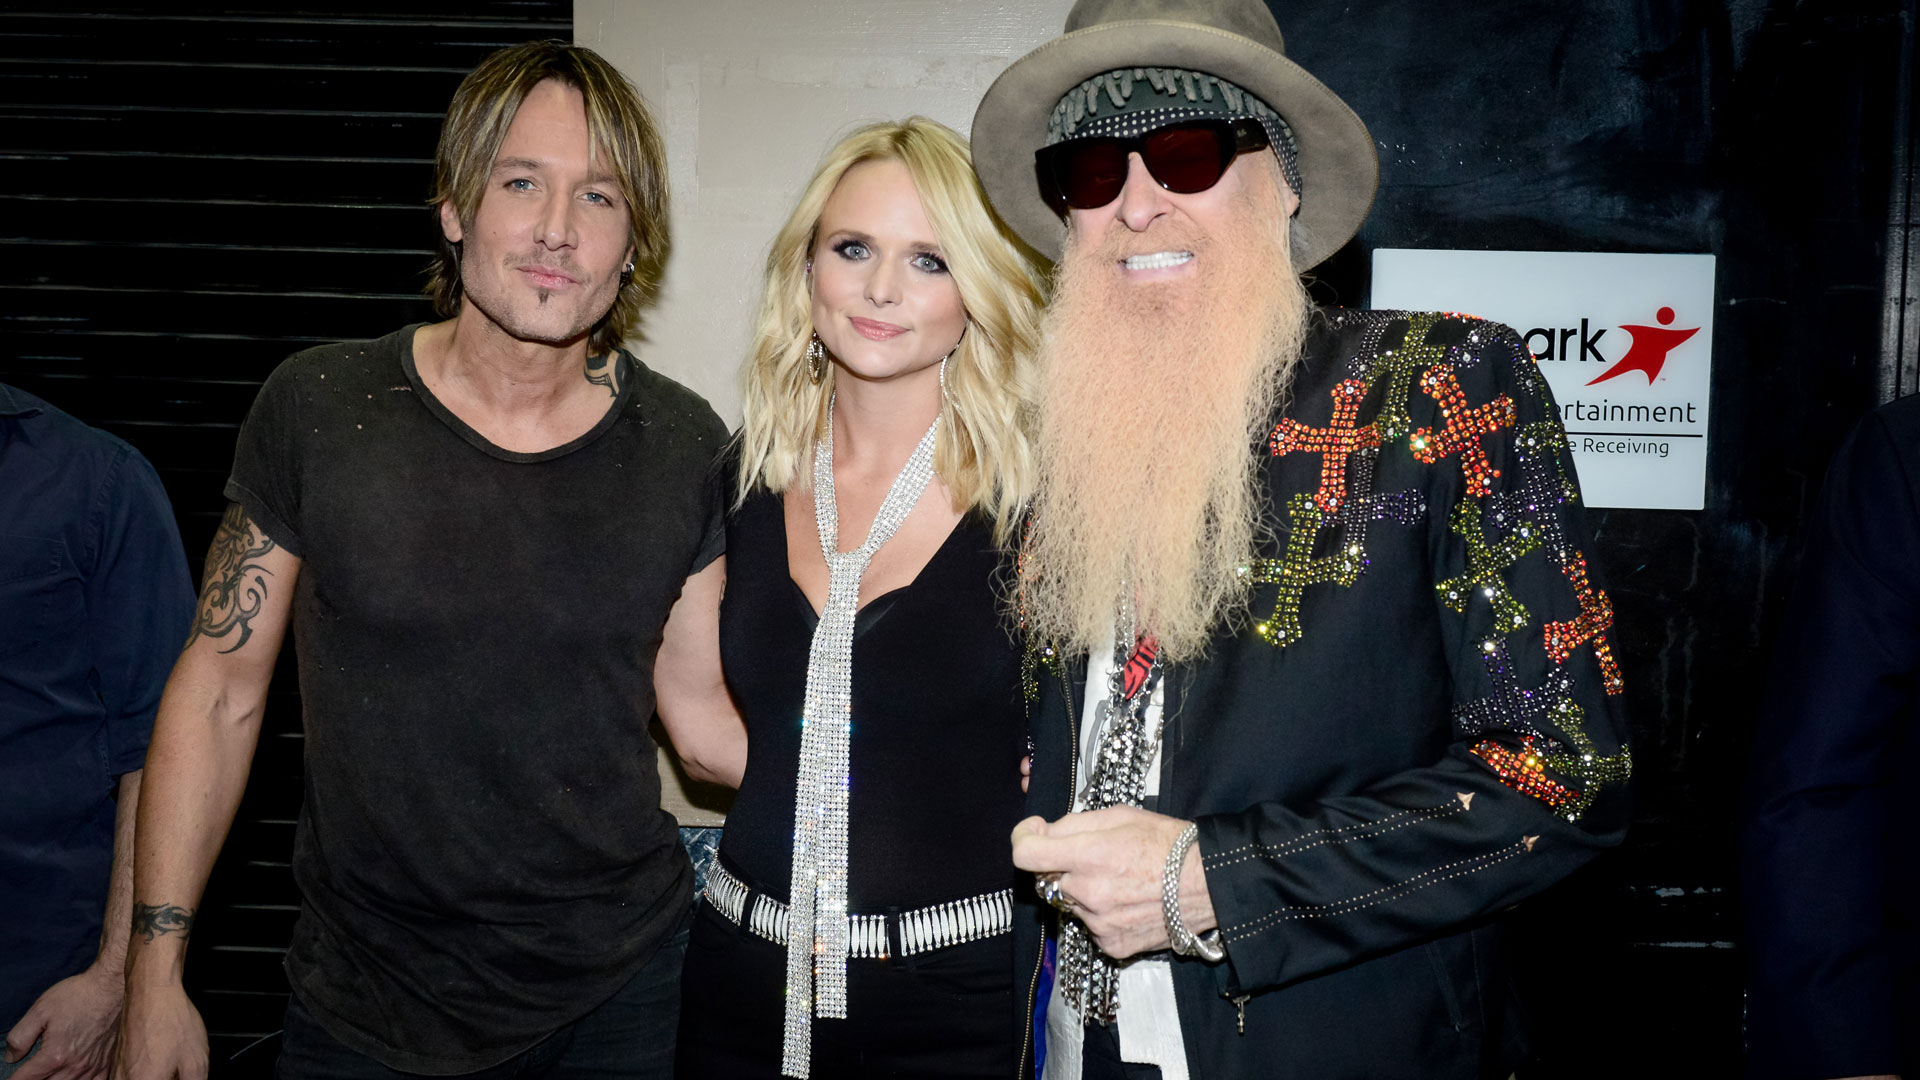 Keith Urban, Miranda Lambert, and ZZ Top guitarist Billy Gibbons hugged backstage before performing